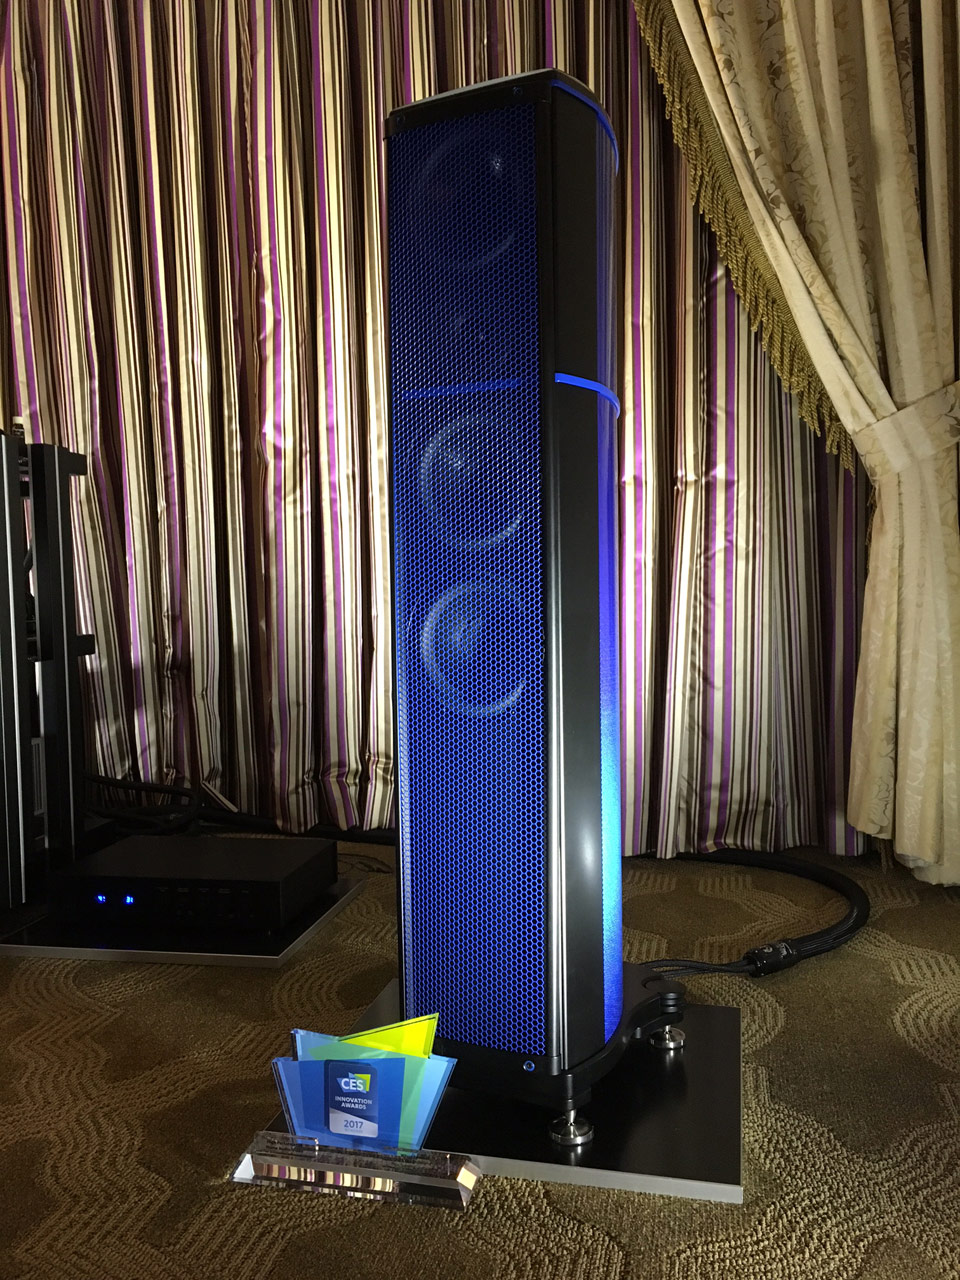 Wilson Benesch - A.C.T. One Evolution P1 - Ettore Blue - Hypetex - Coloured Carbon Fibre - Innovation Award